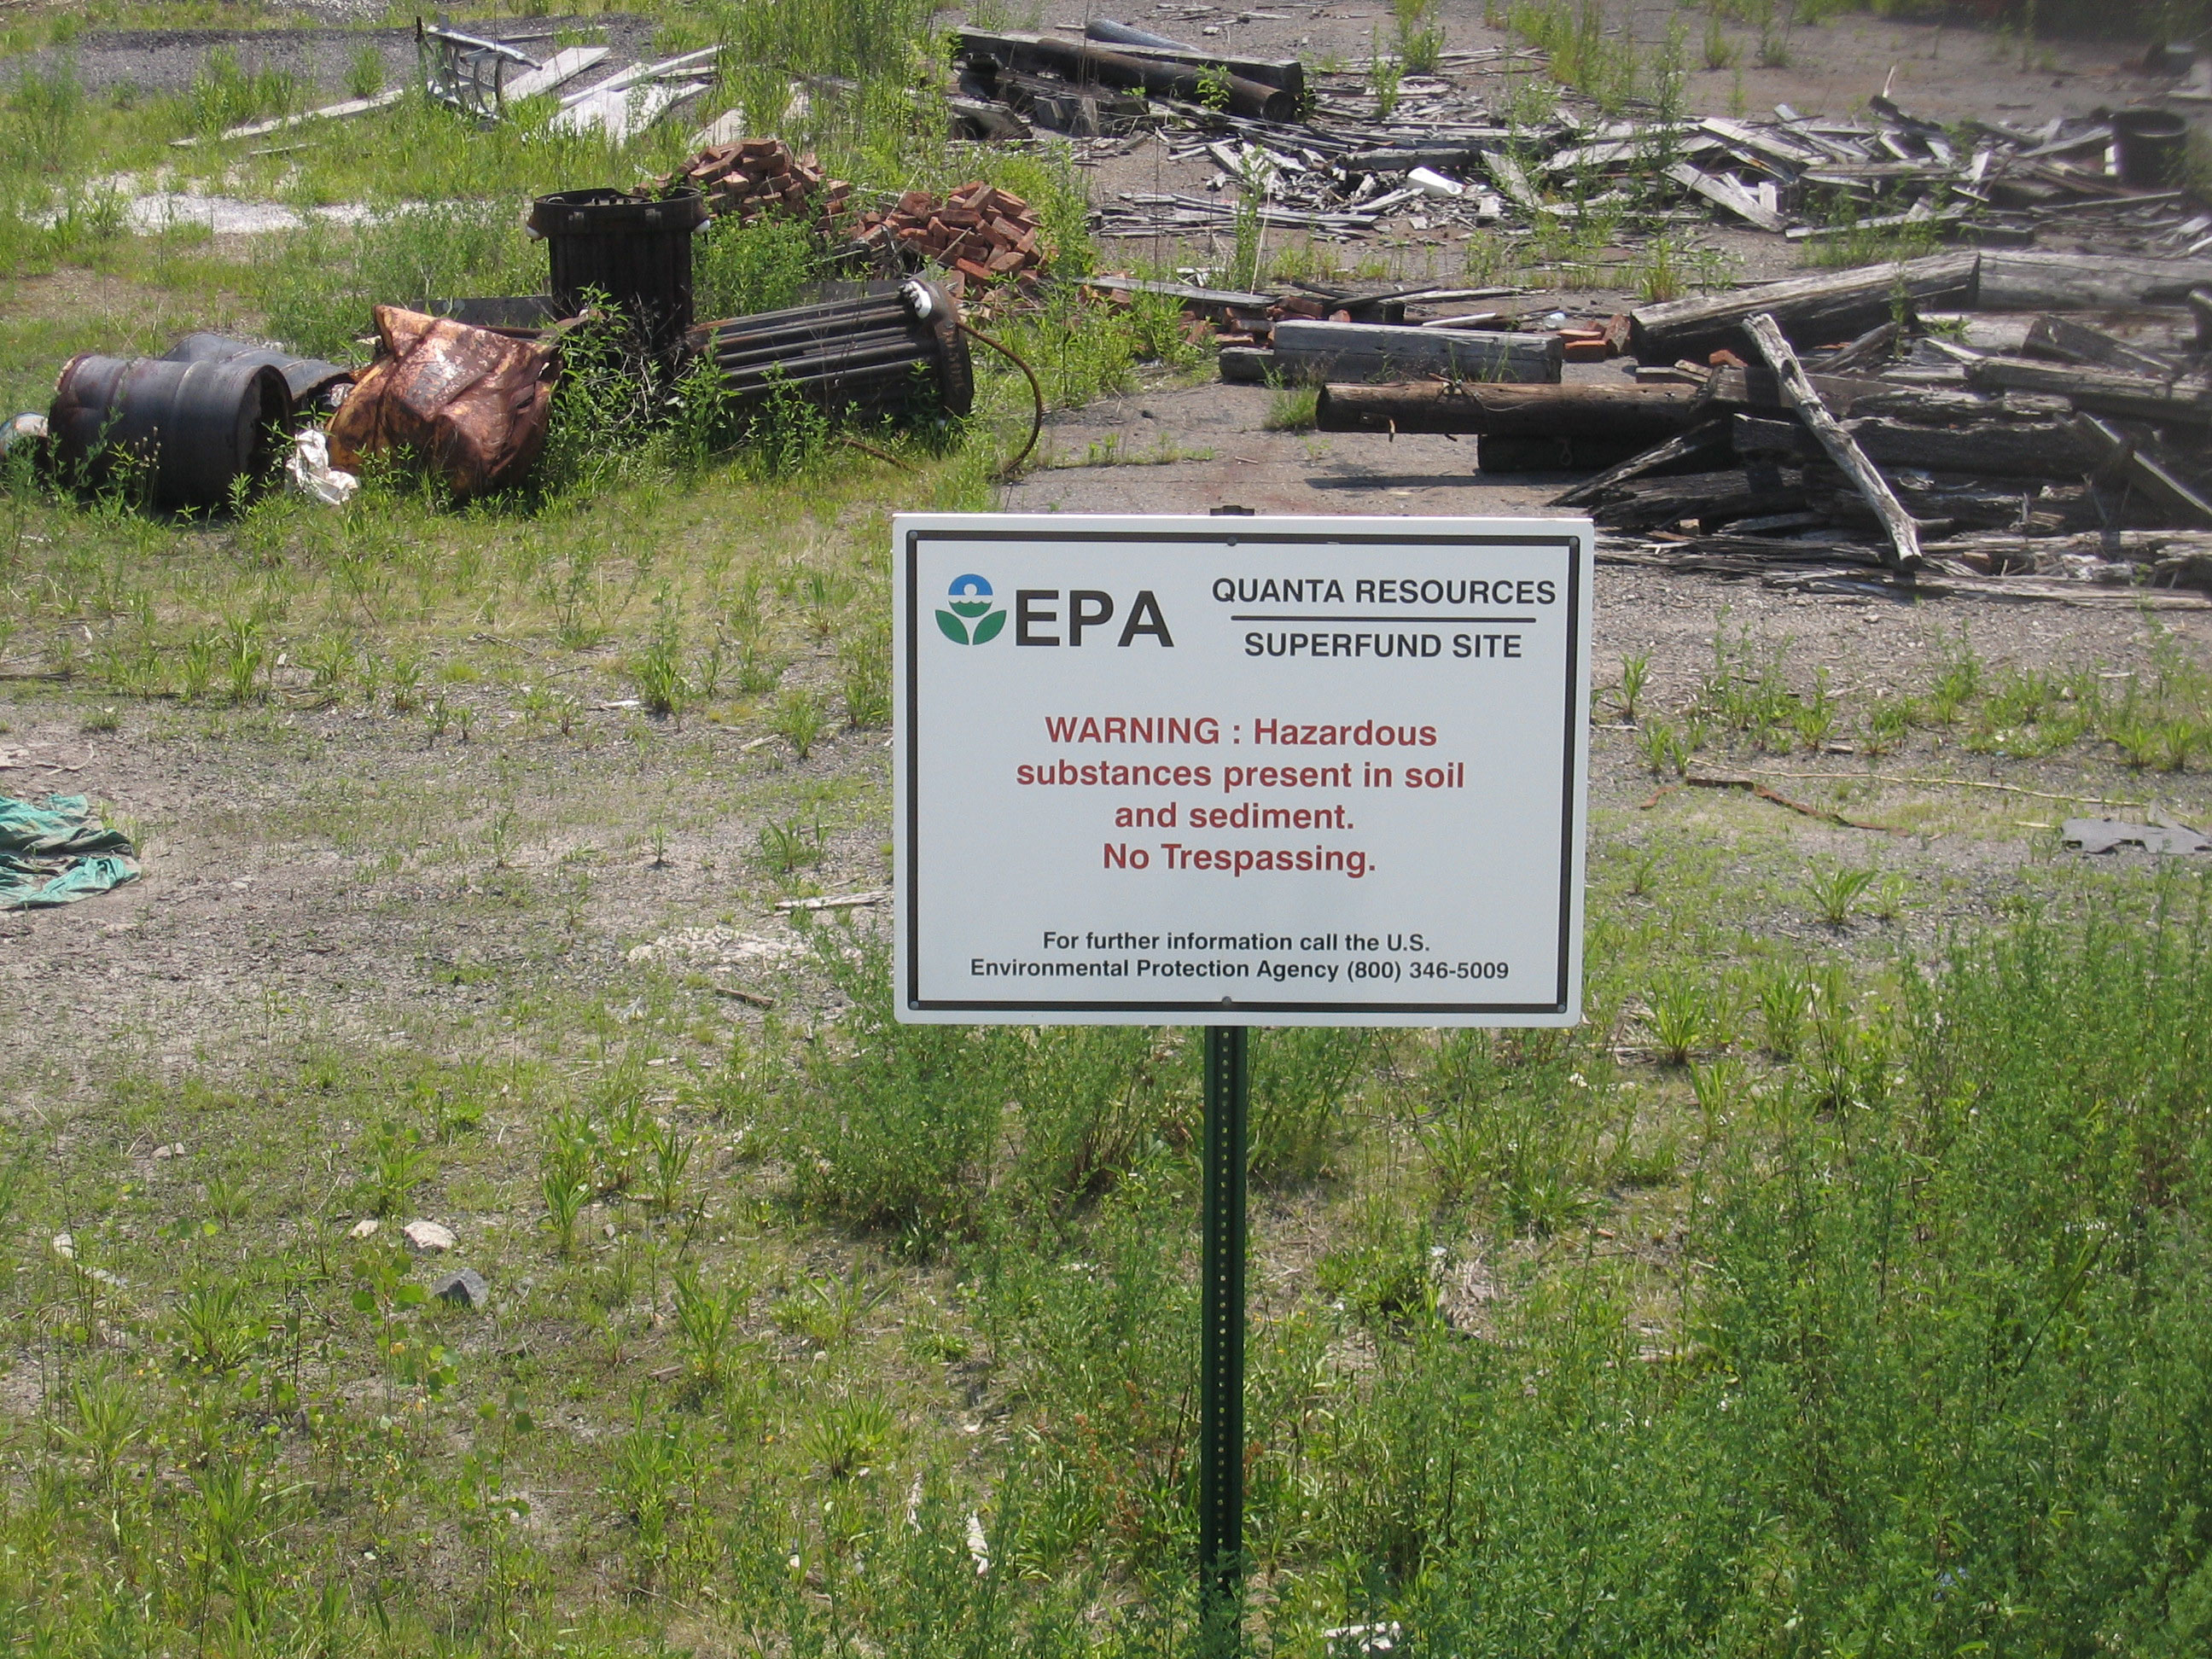 superfund sites in the united states essay View essay - assignment 3 a superfund site refers to land within the united states that's been compromised by some form all superfund sites are listed on.